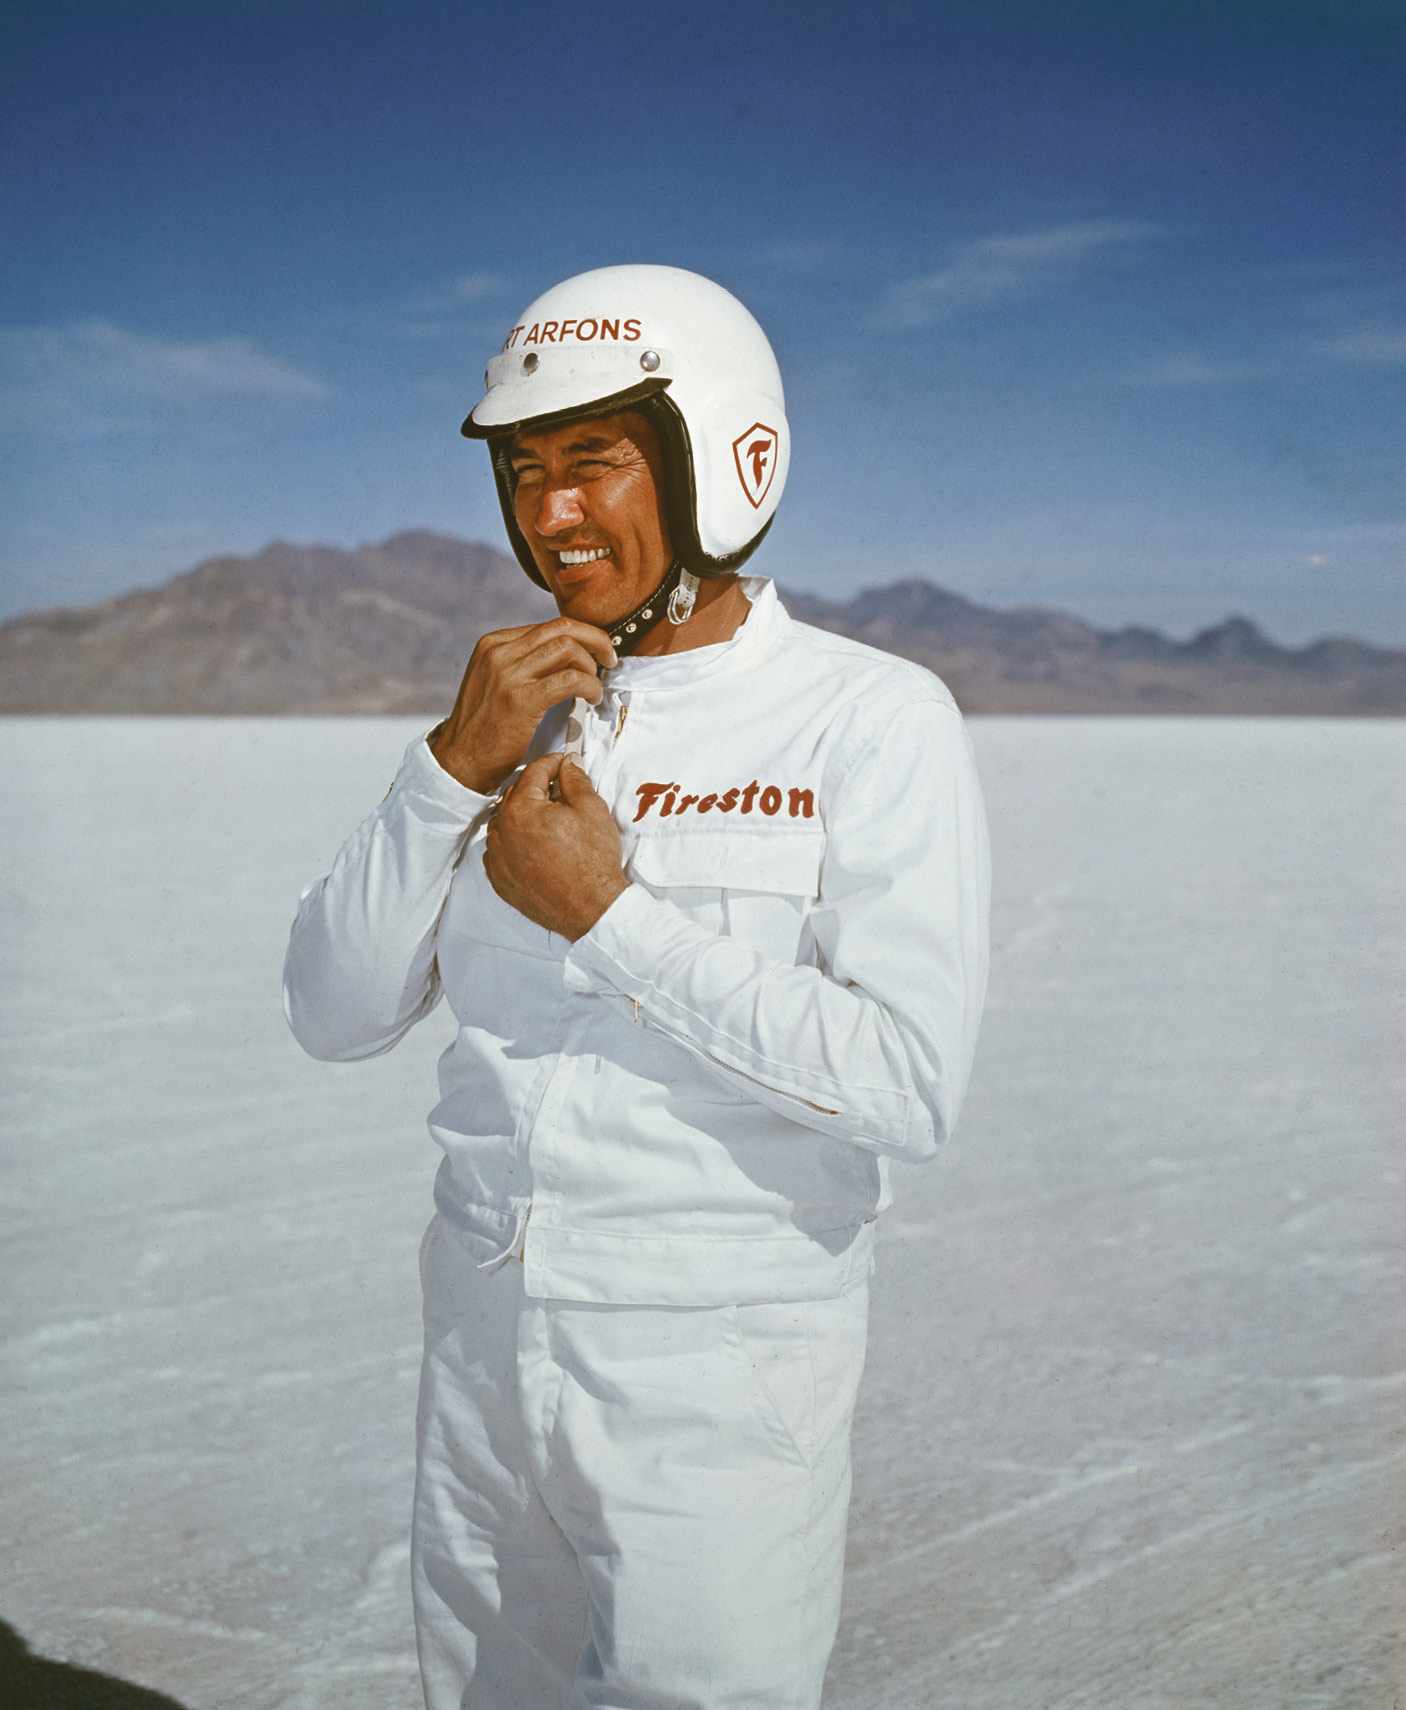 Art Arfons set the land speed record three times between 1964-65 with the Green Monster jet-powered cars. Walt is credited with introducing parachutes to slow drag racing cars